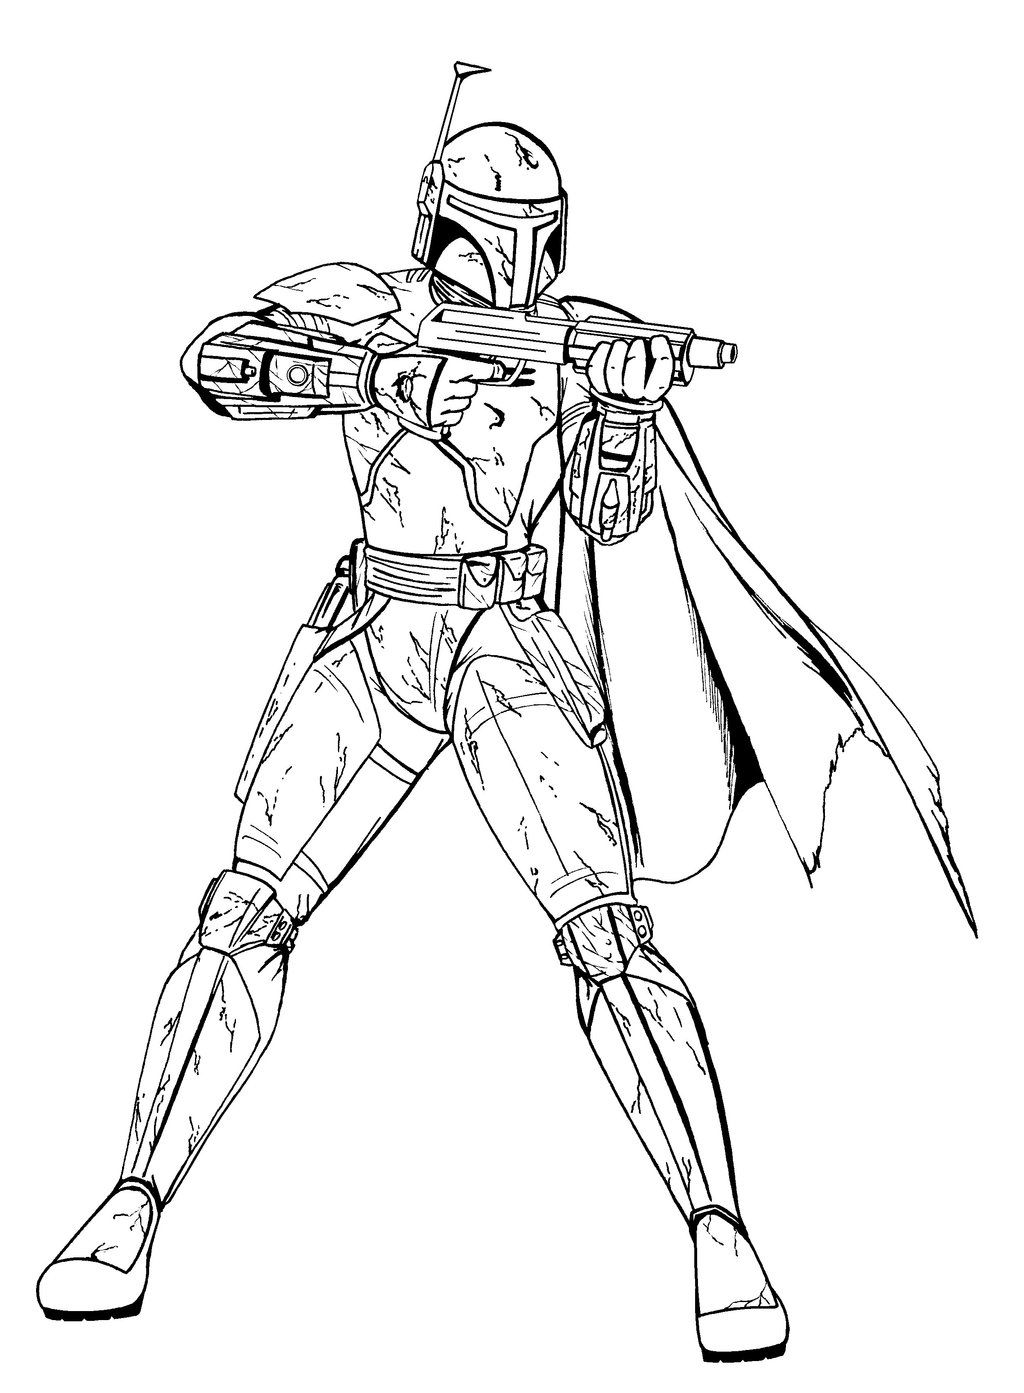 Bobba Fett Coloring Page Star wars coloring book